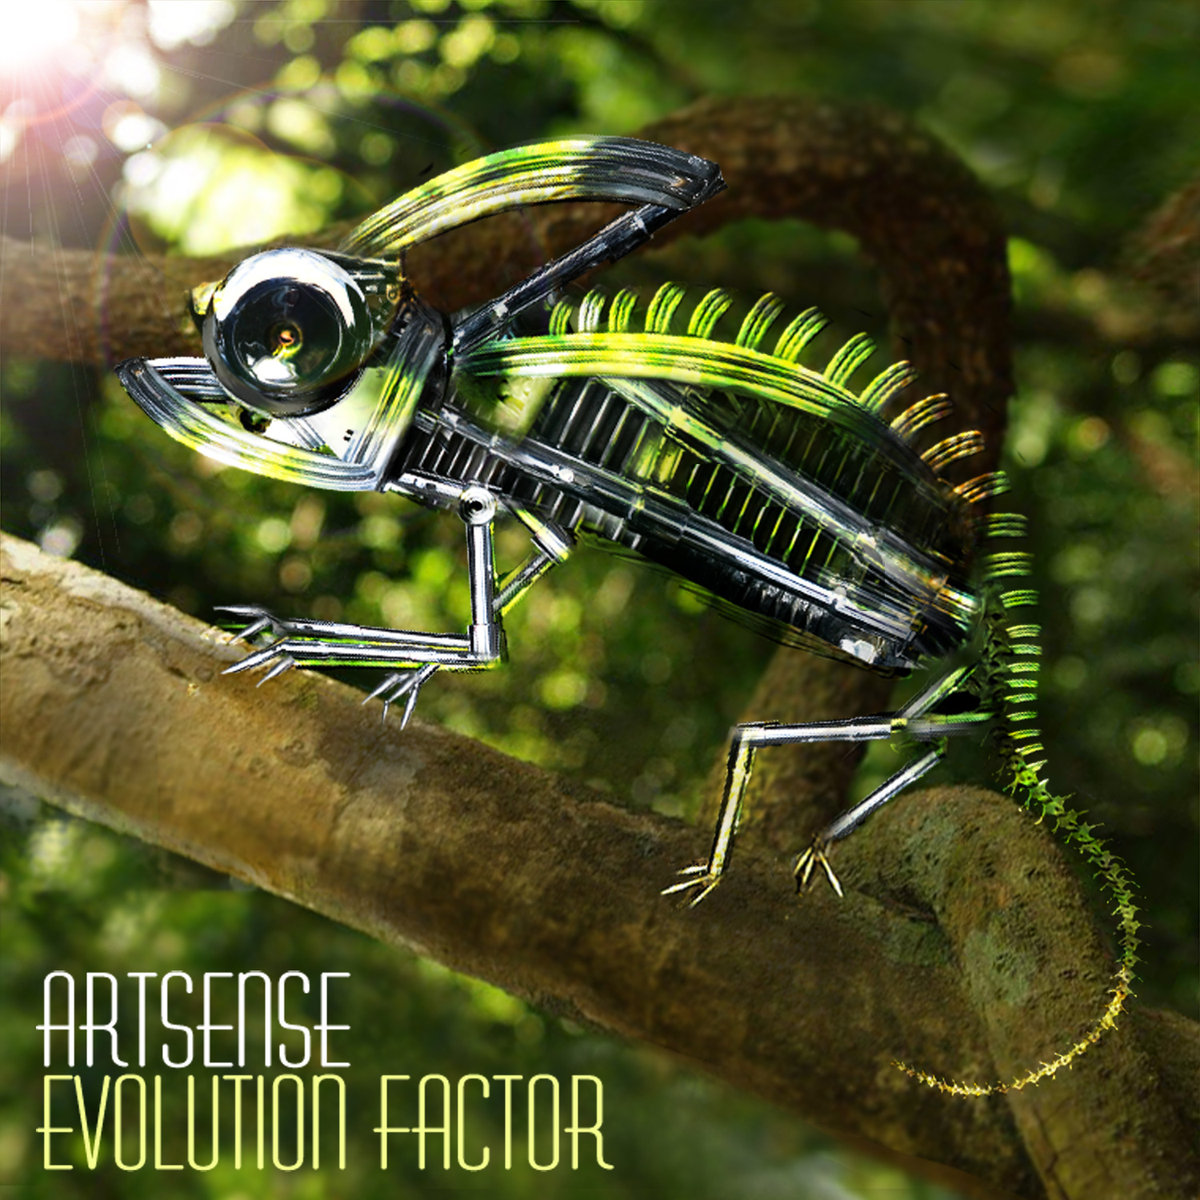 Artsense - Kickin' Hard @ 'Evolution Factor' album (electronic, goa)